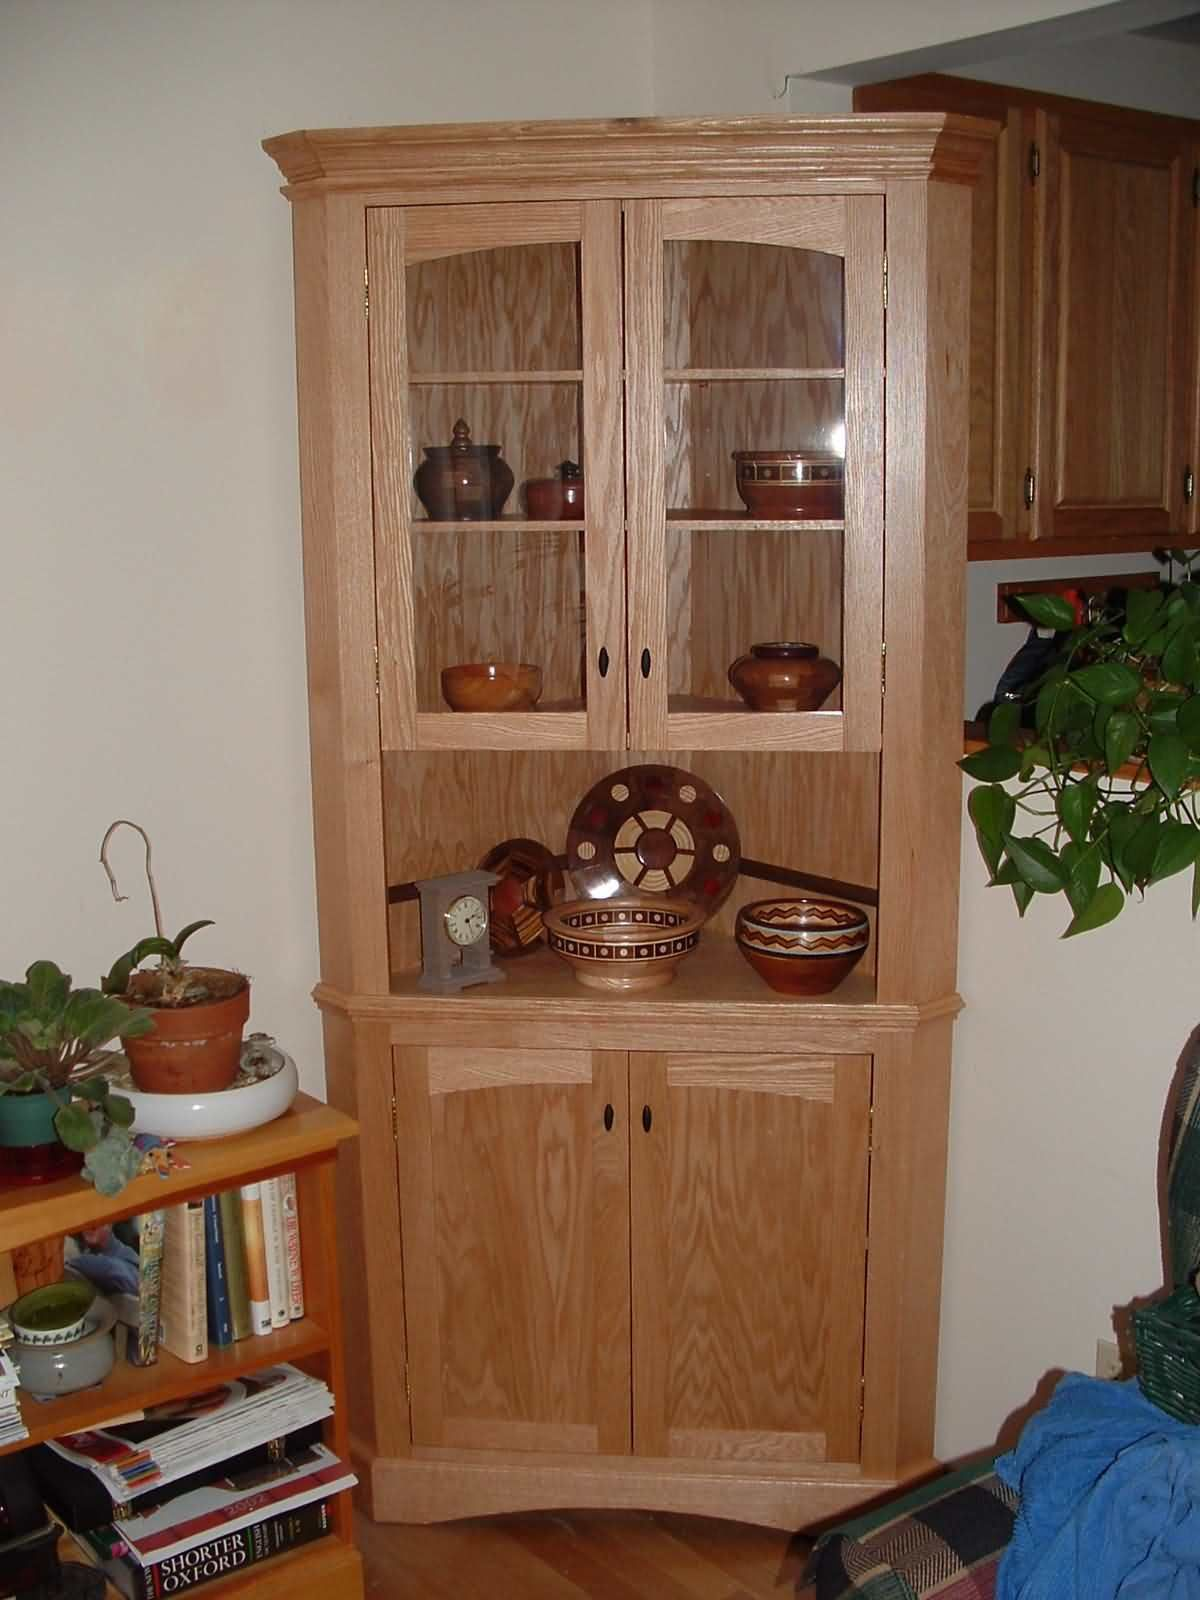 Handcrafted Corner Cabinet  Ideas For My Indoor Space  Pinterest Captivating Corner Hutch Dining Room Design Decoration